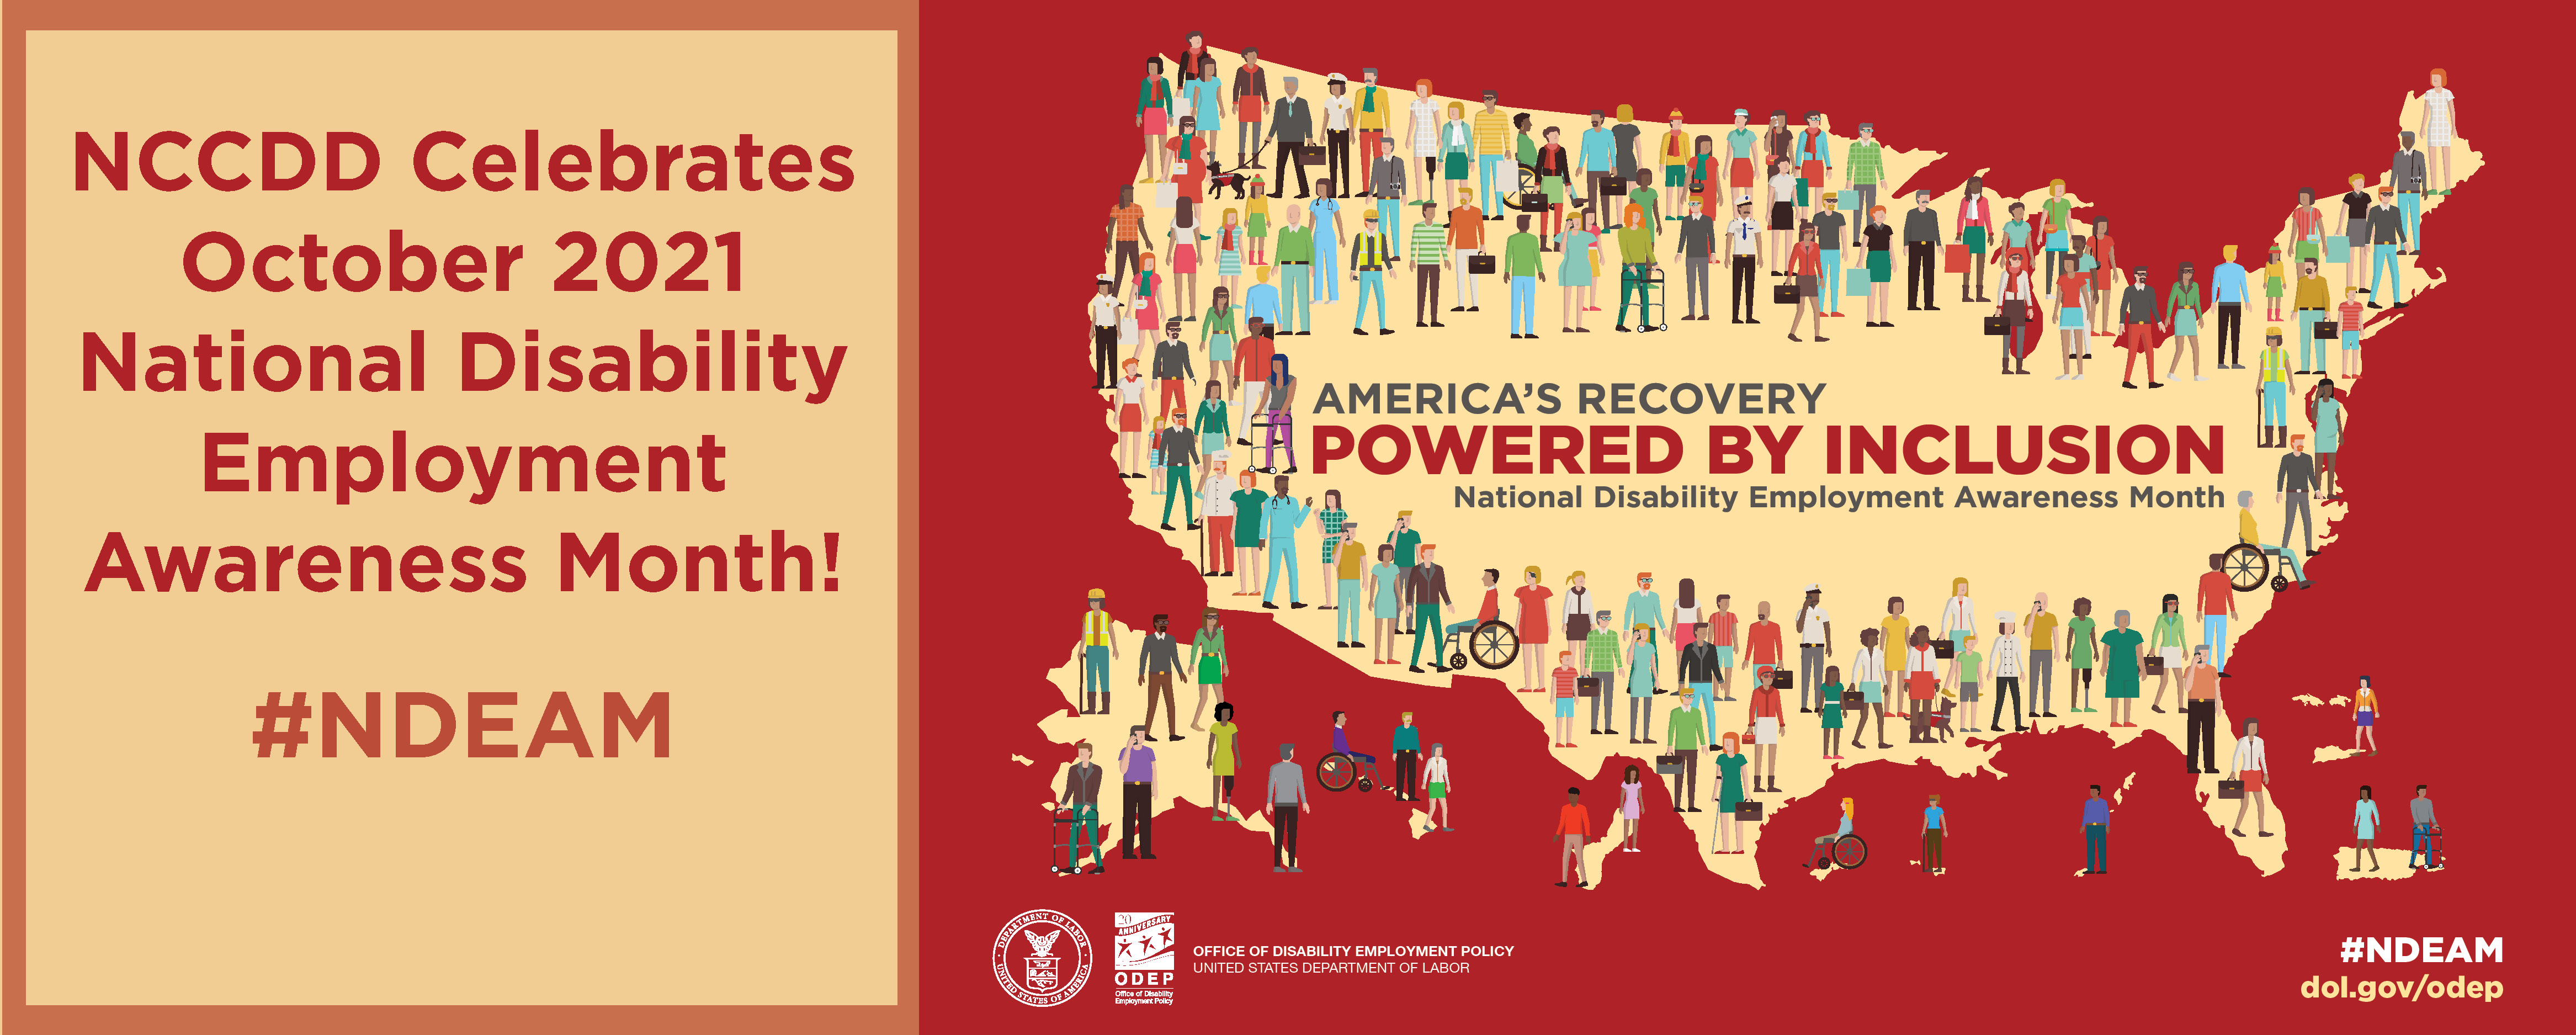 Celebrate National Disability Employment Awareness Month October 2021, #NDEAM